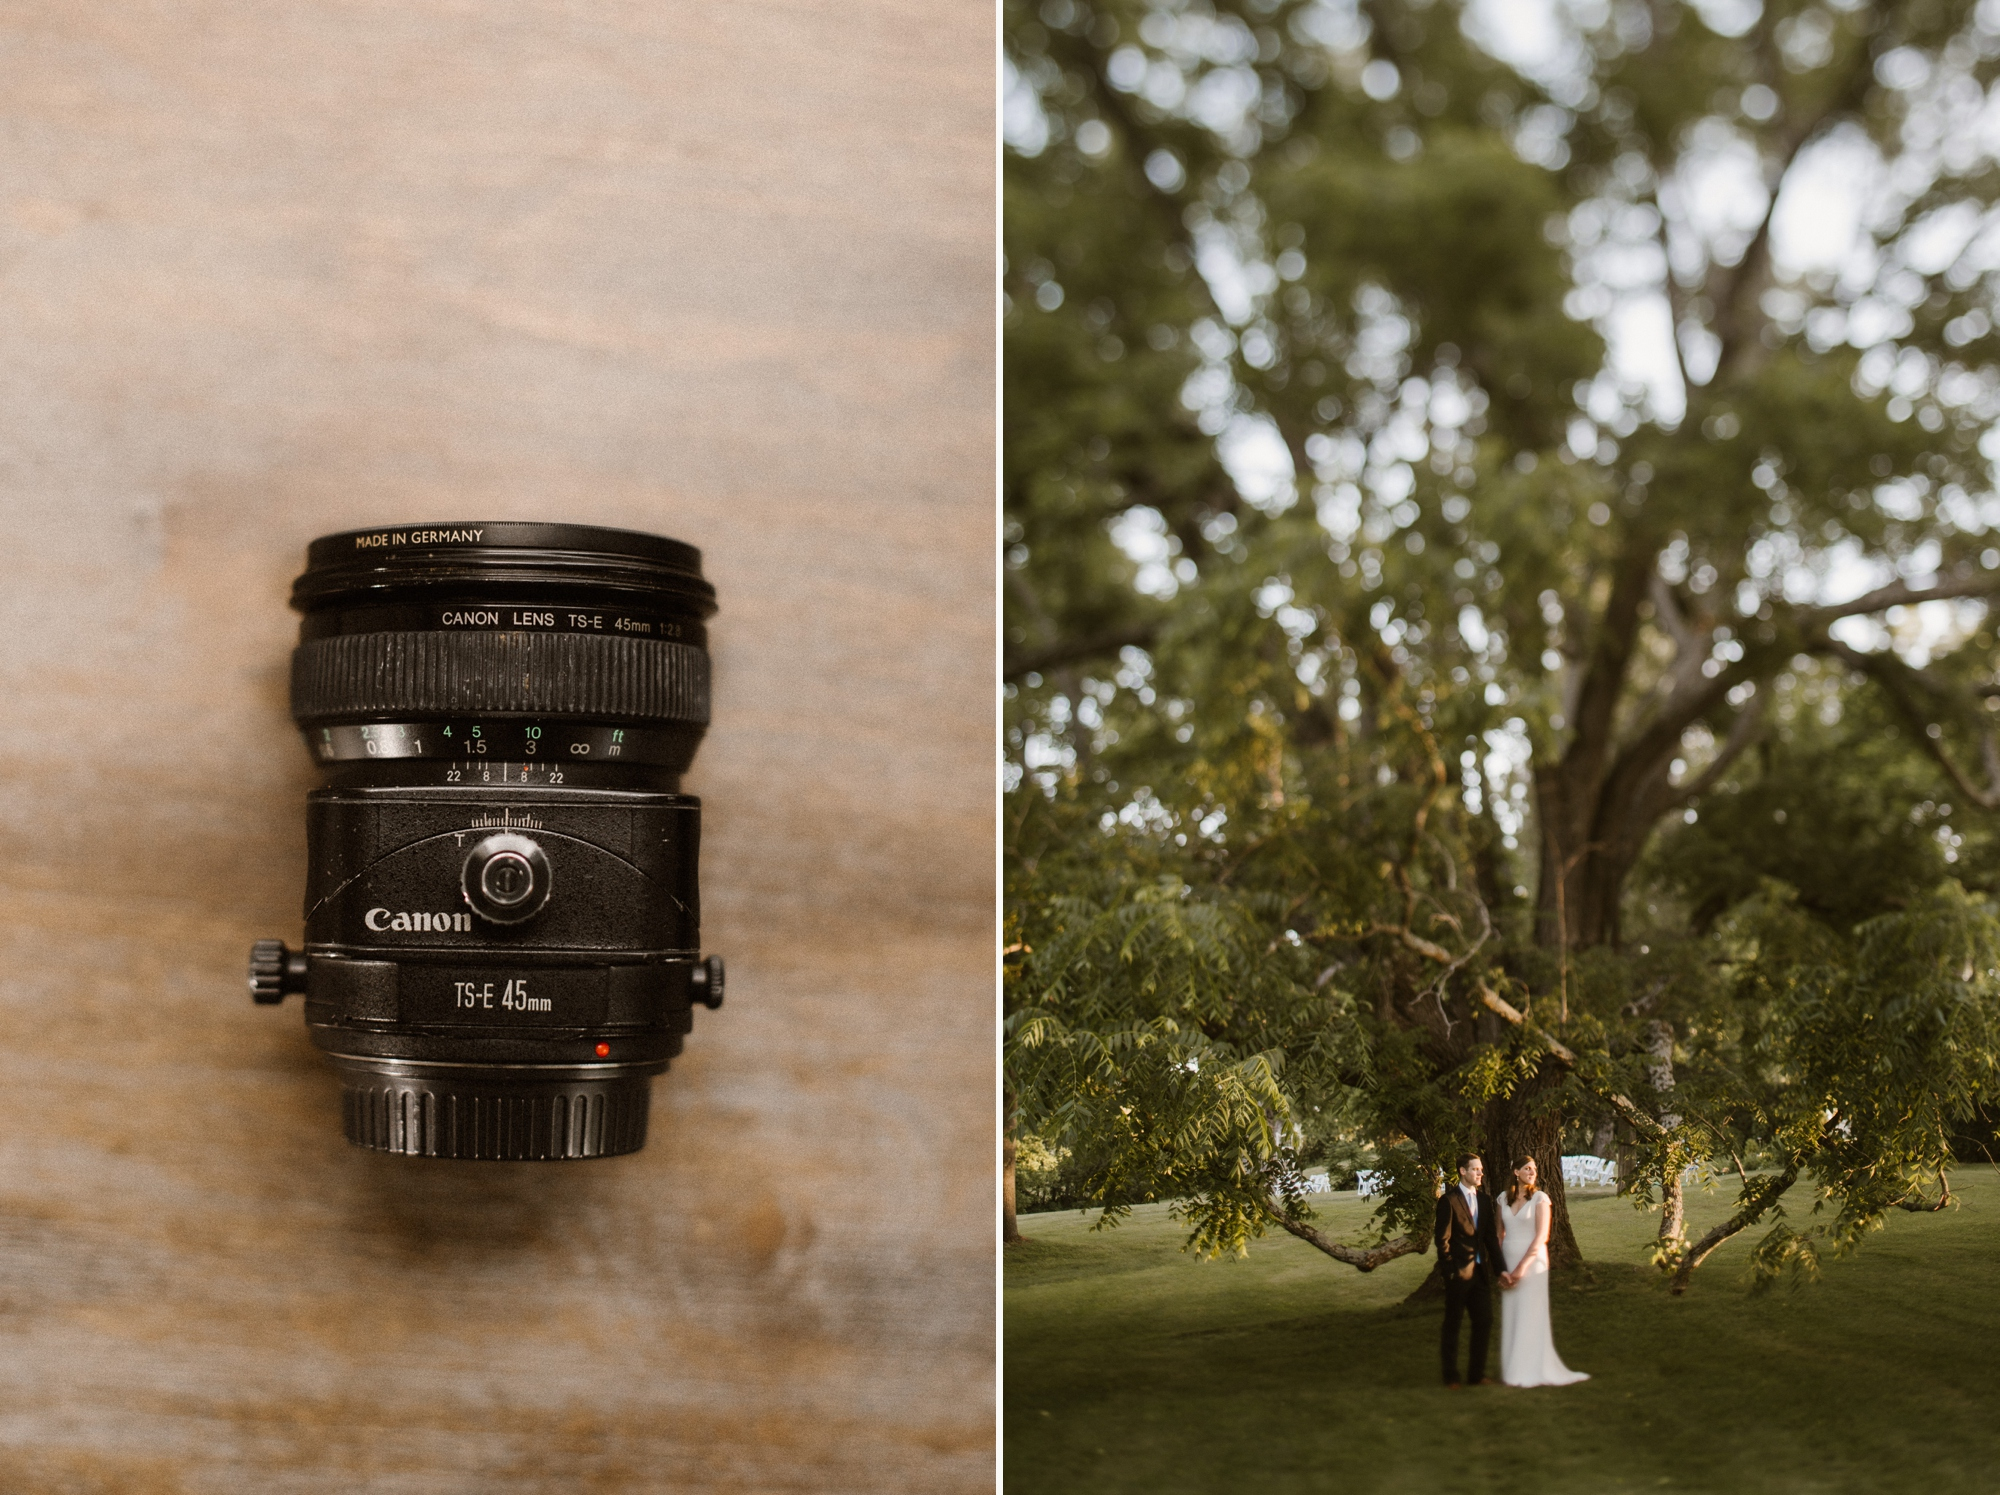 kates-gear-2017-8_canon-5d-mark-iv-gear-bag-baltimore-annapolis-washington-d-c-maryland-wedding-photographer-earthy-boho-kate-ann-photography-photo